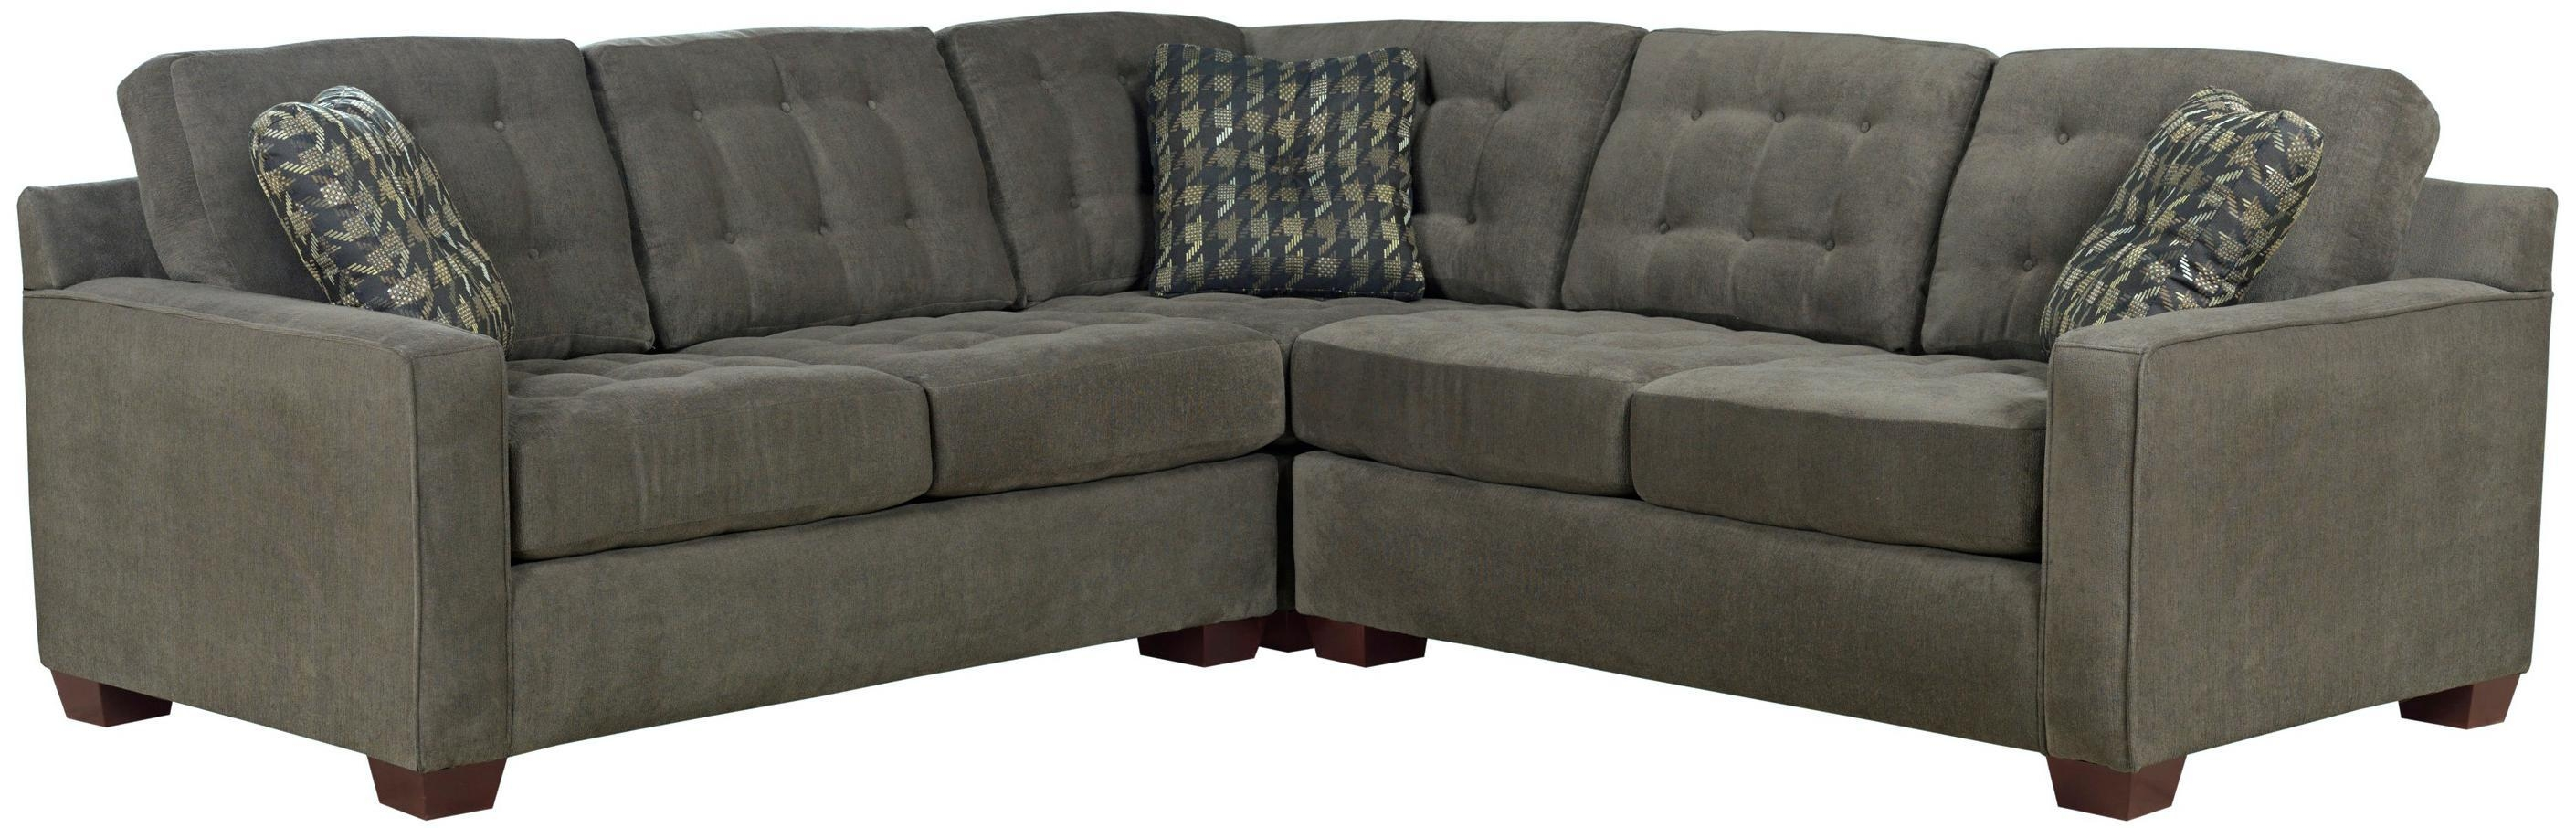 Broyhill Furniture Tribeca Contemporary L Shaped Sectional Sofa With Regard To Broyhill Sectional Sofa (View 8 of 15)